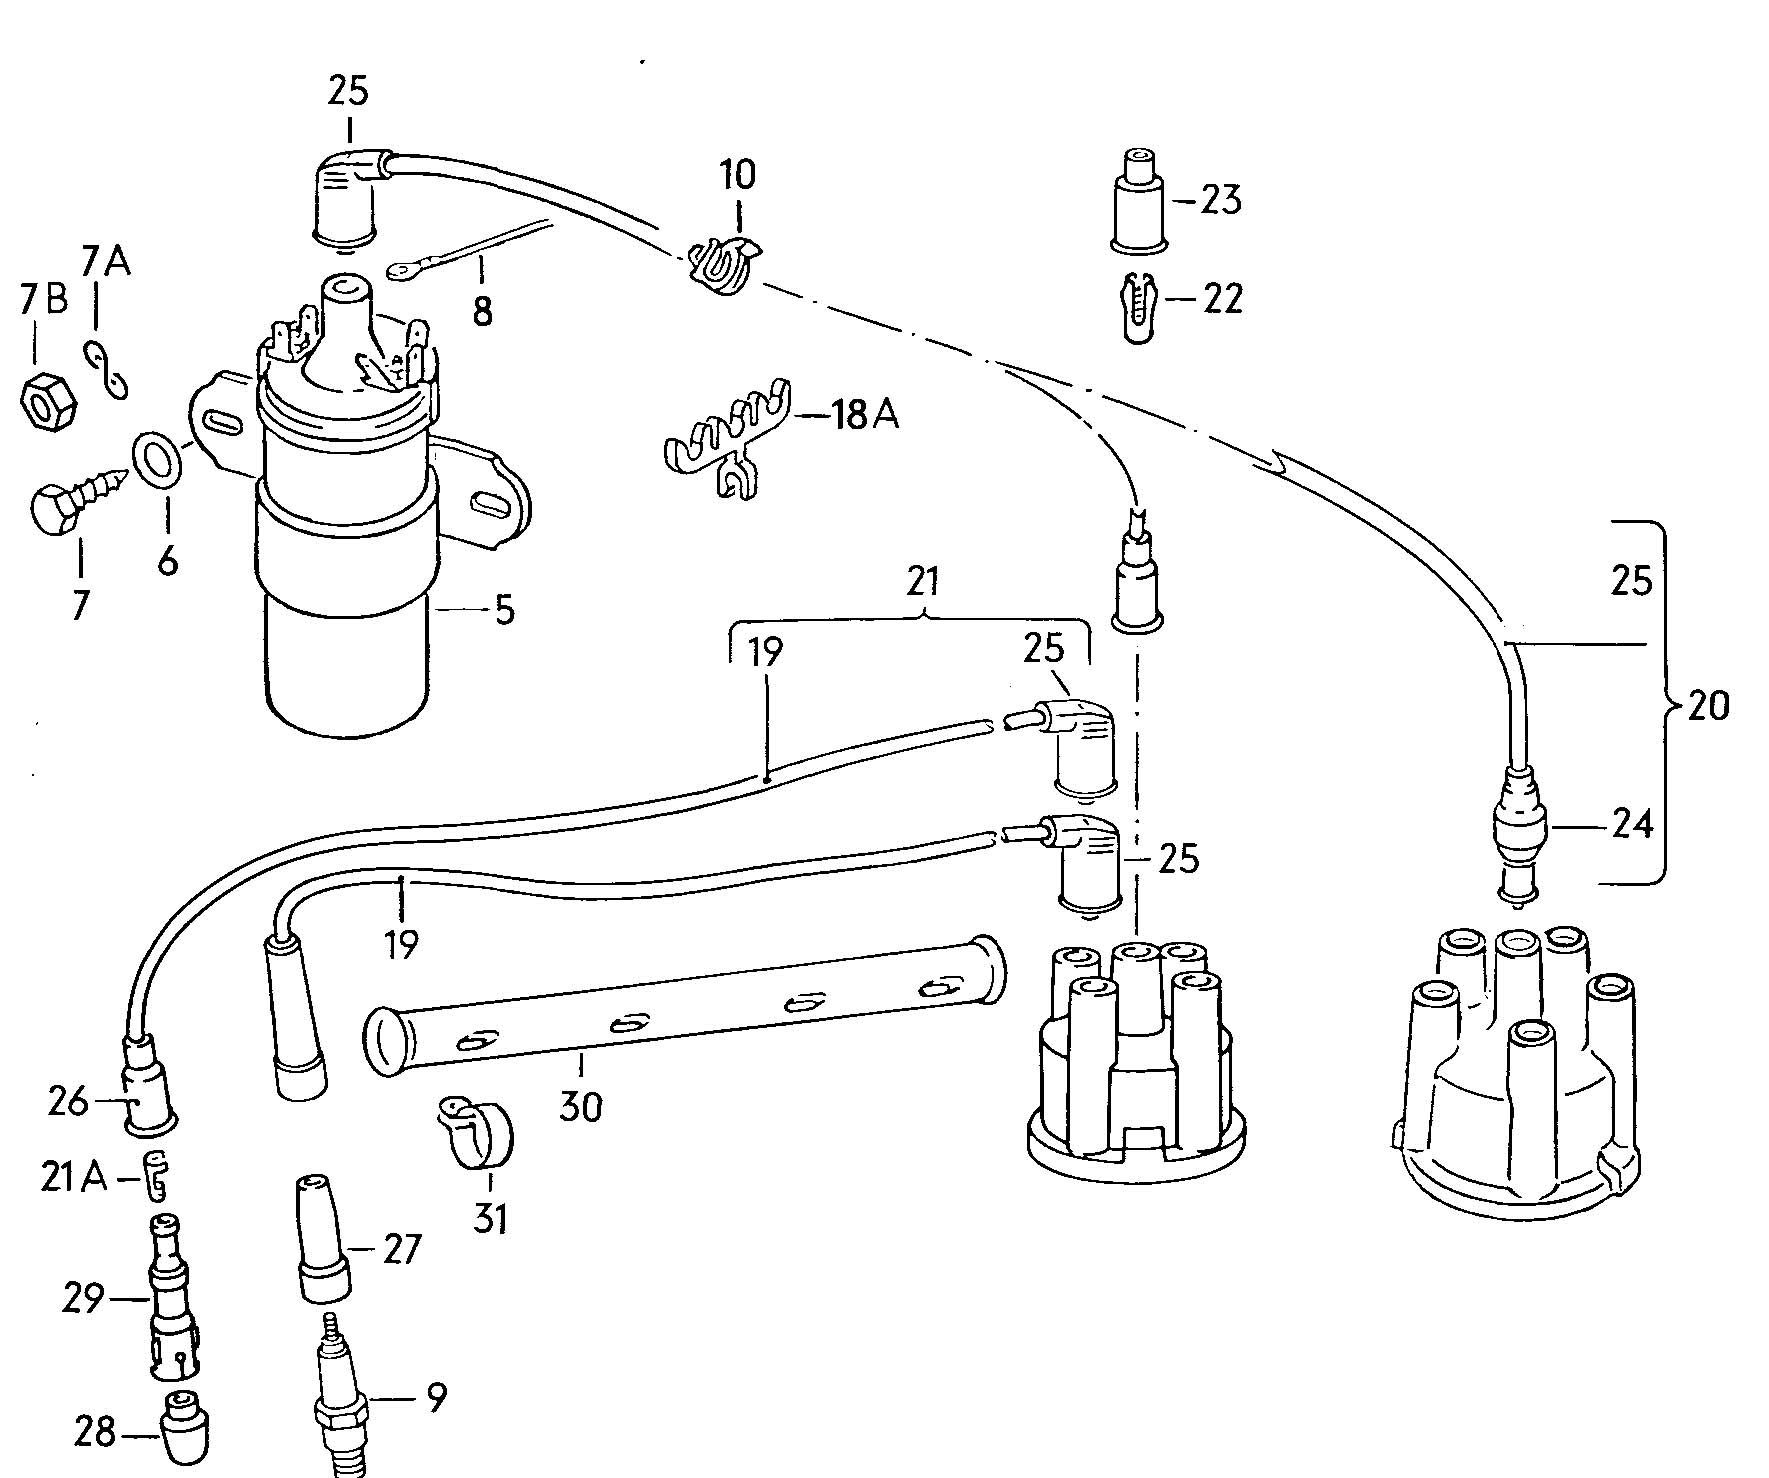 Wiring Diagram: 32 Vw Beetle Ignition Coil Wiring Diagram